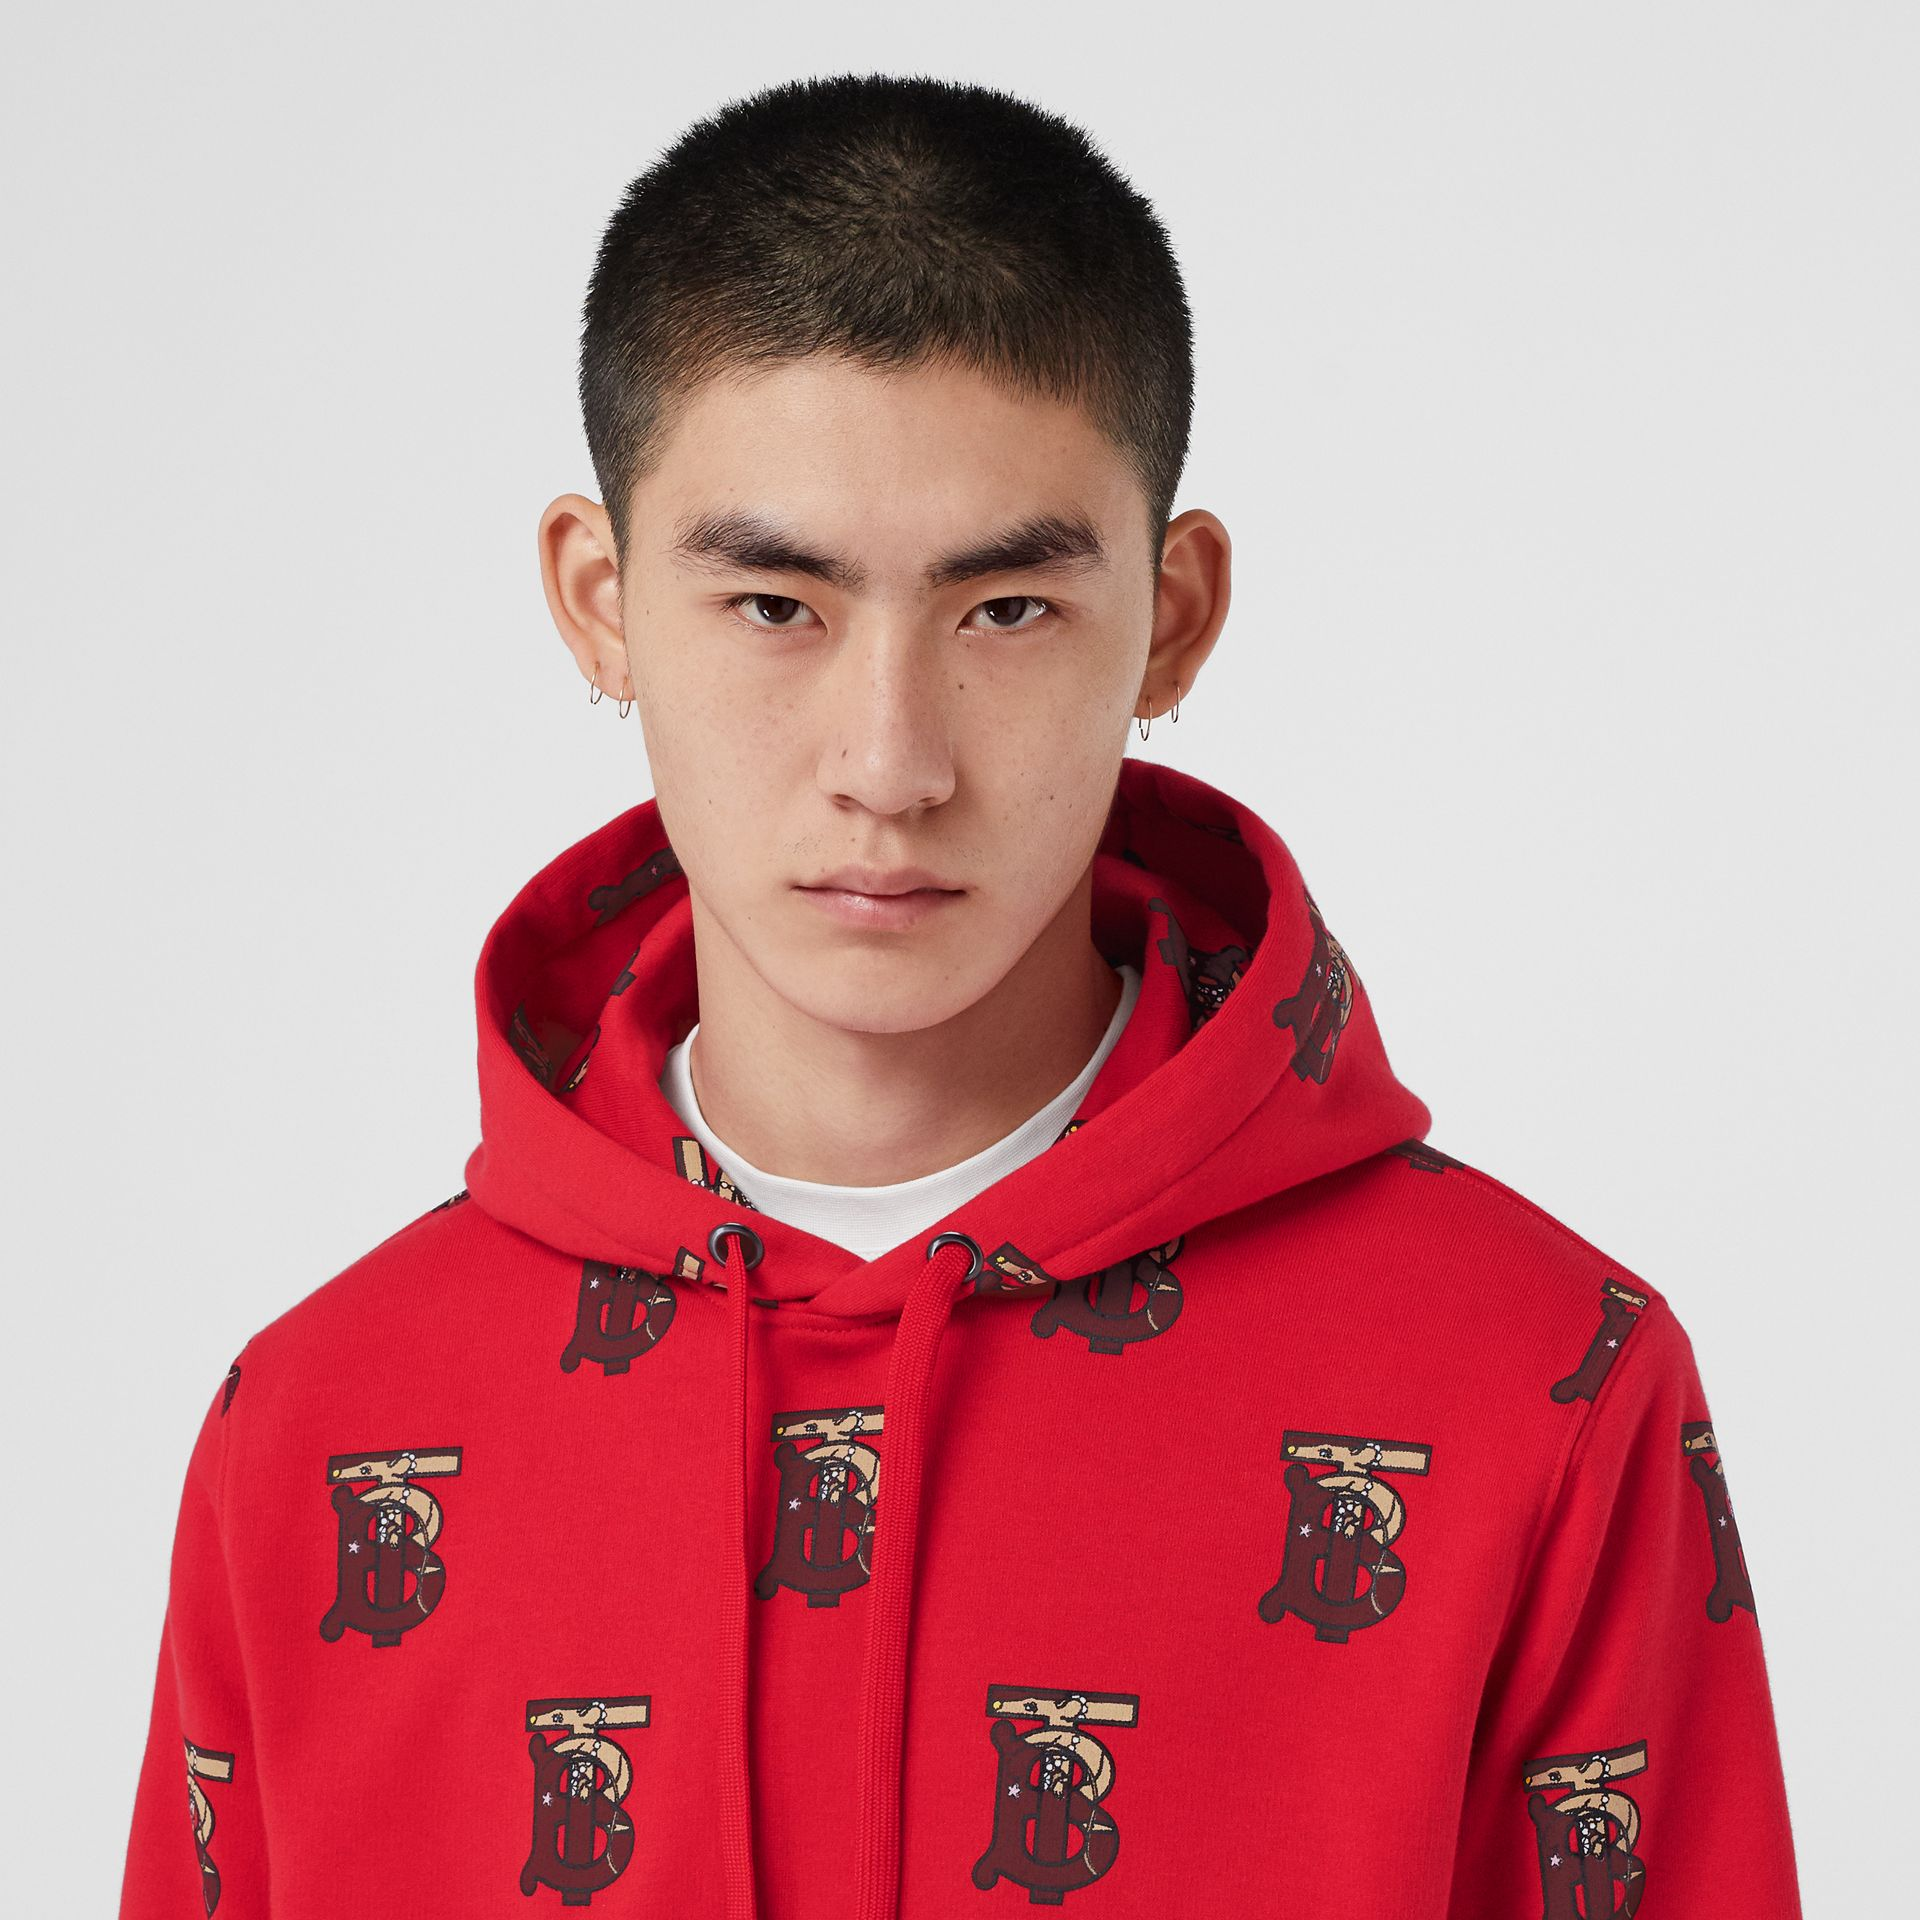 Monogram Motif Cotton Oversized Hoodie in Bright Red - Men | Burberry - gallery image 1